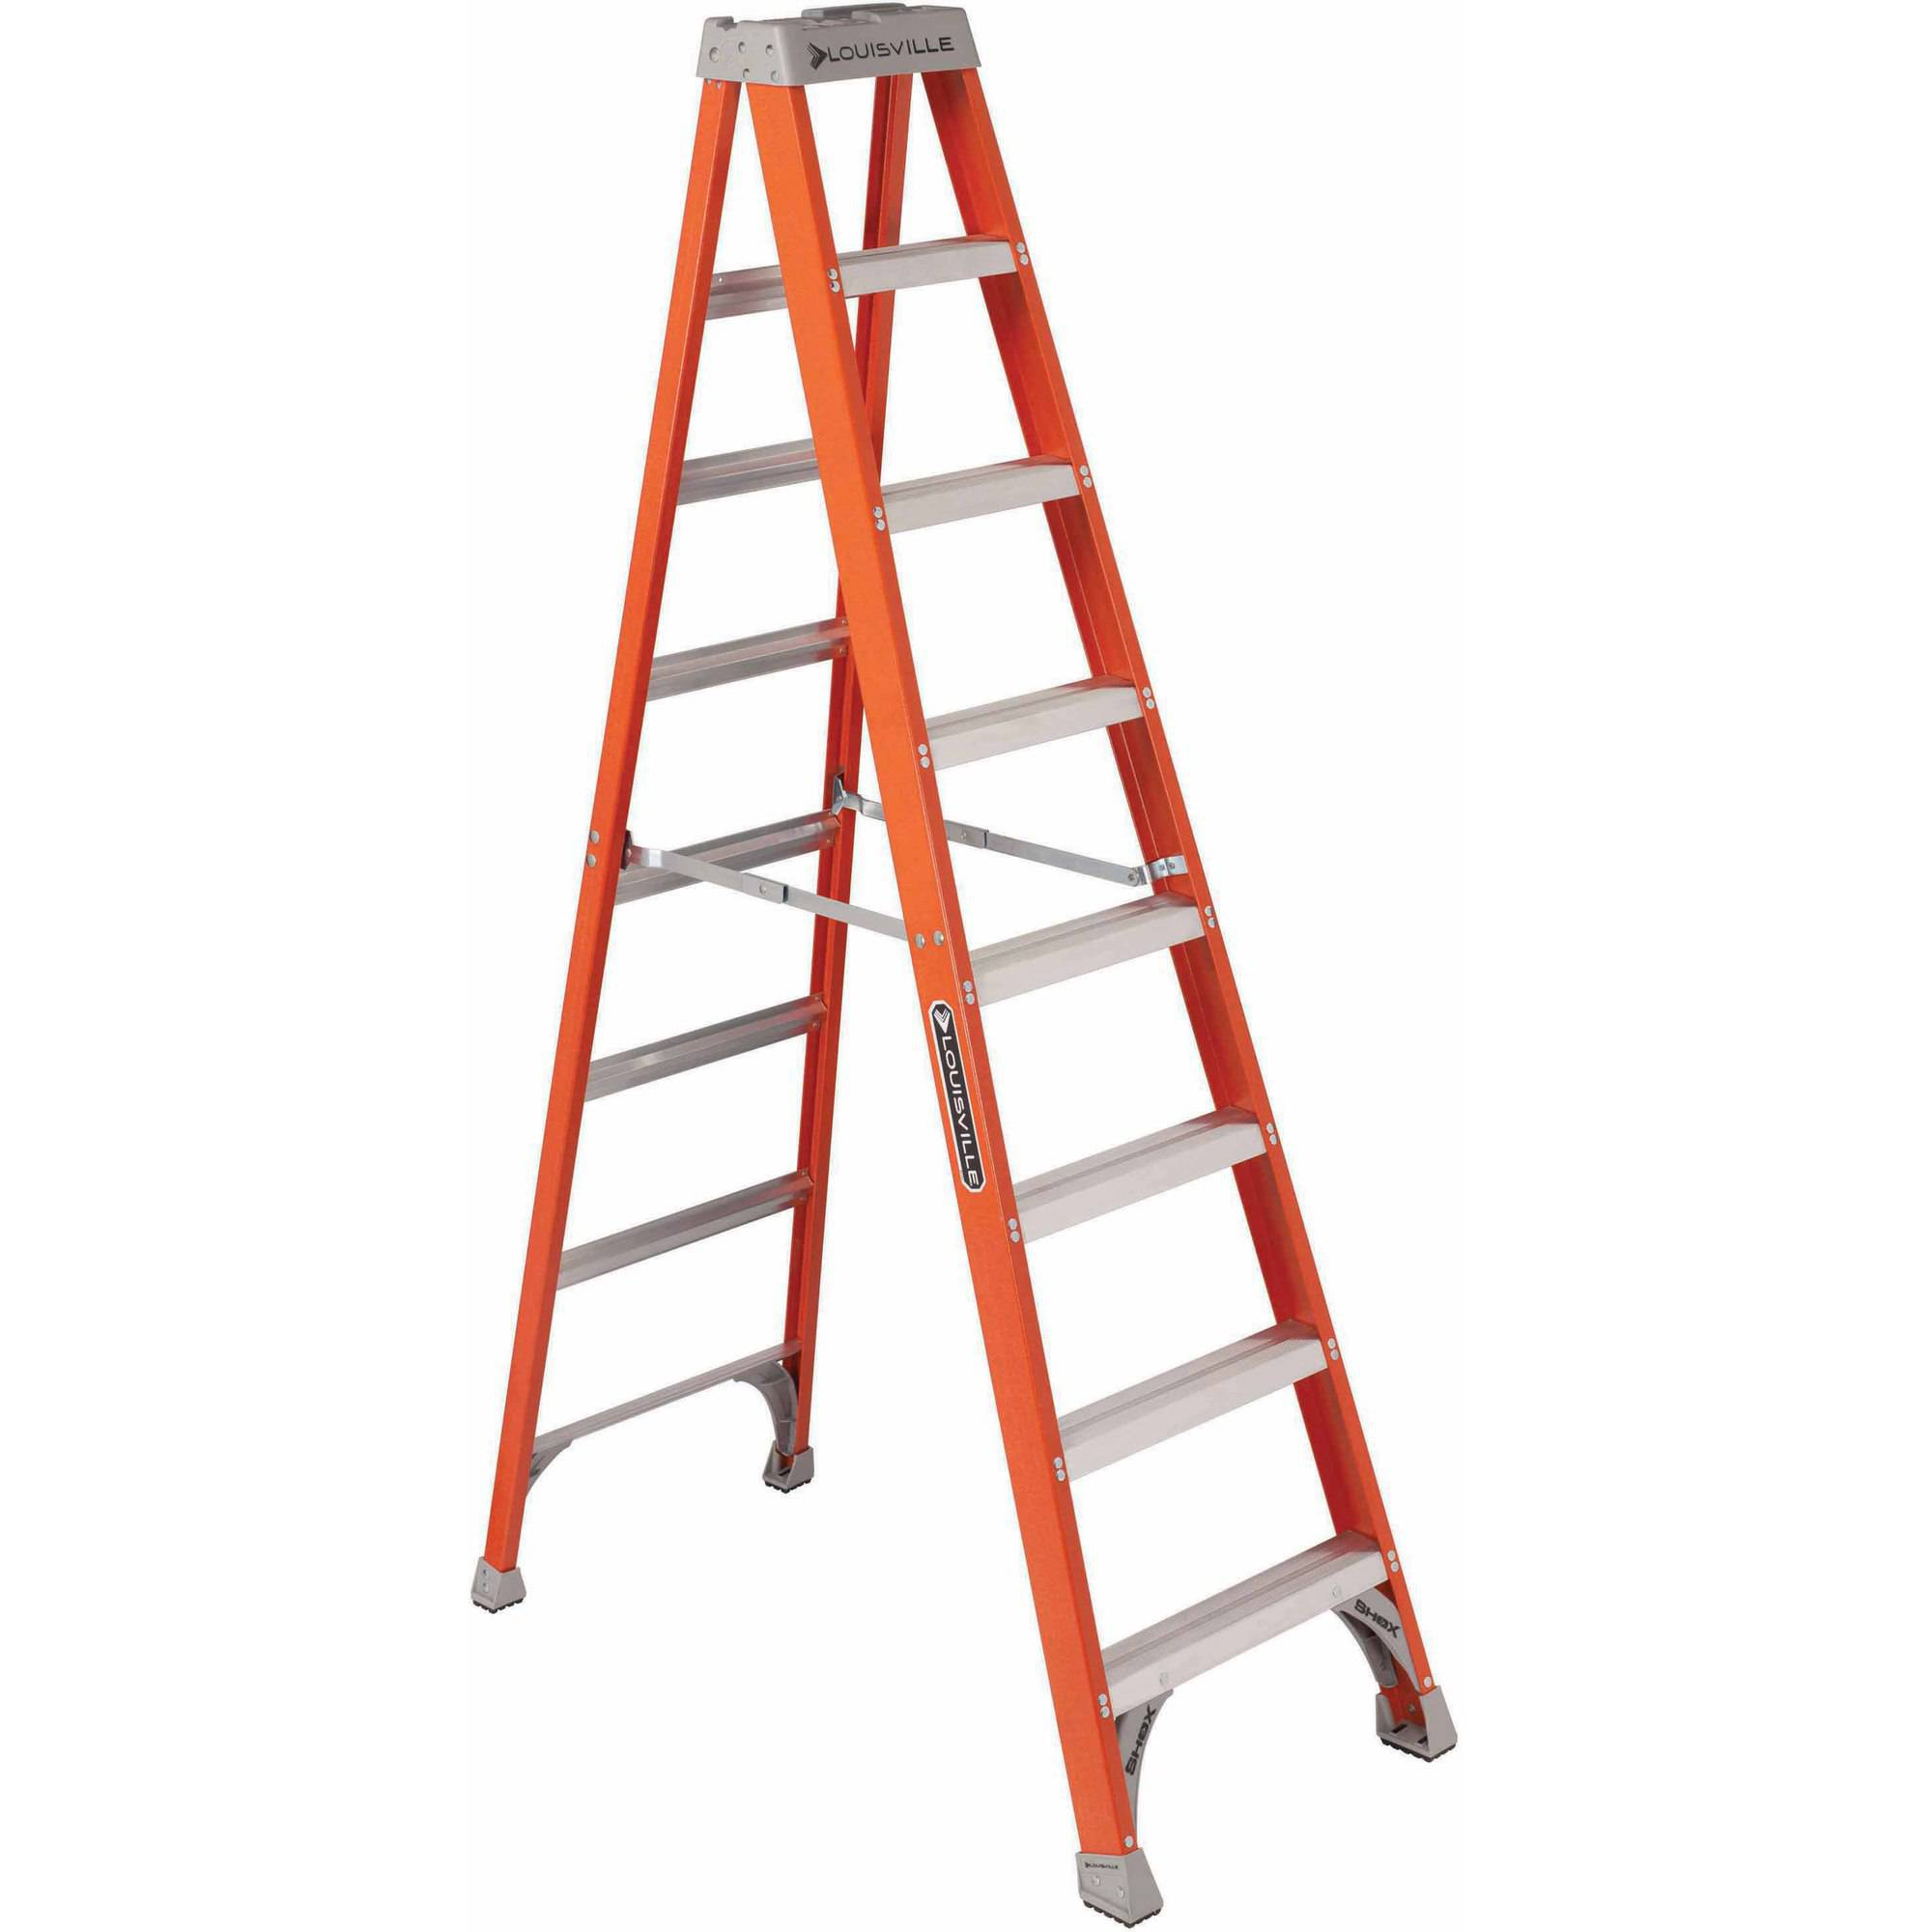 Louisville Ladder 8' Fiberglass Step Ladder, 300 lbs Duty Rated Type IA